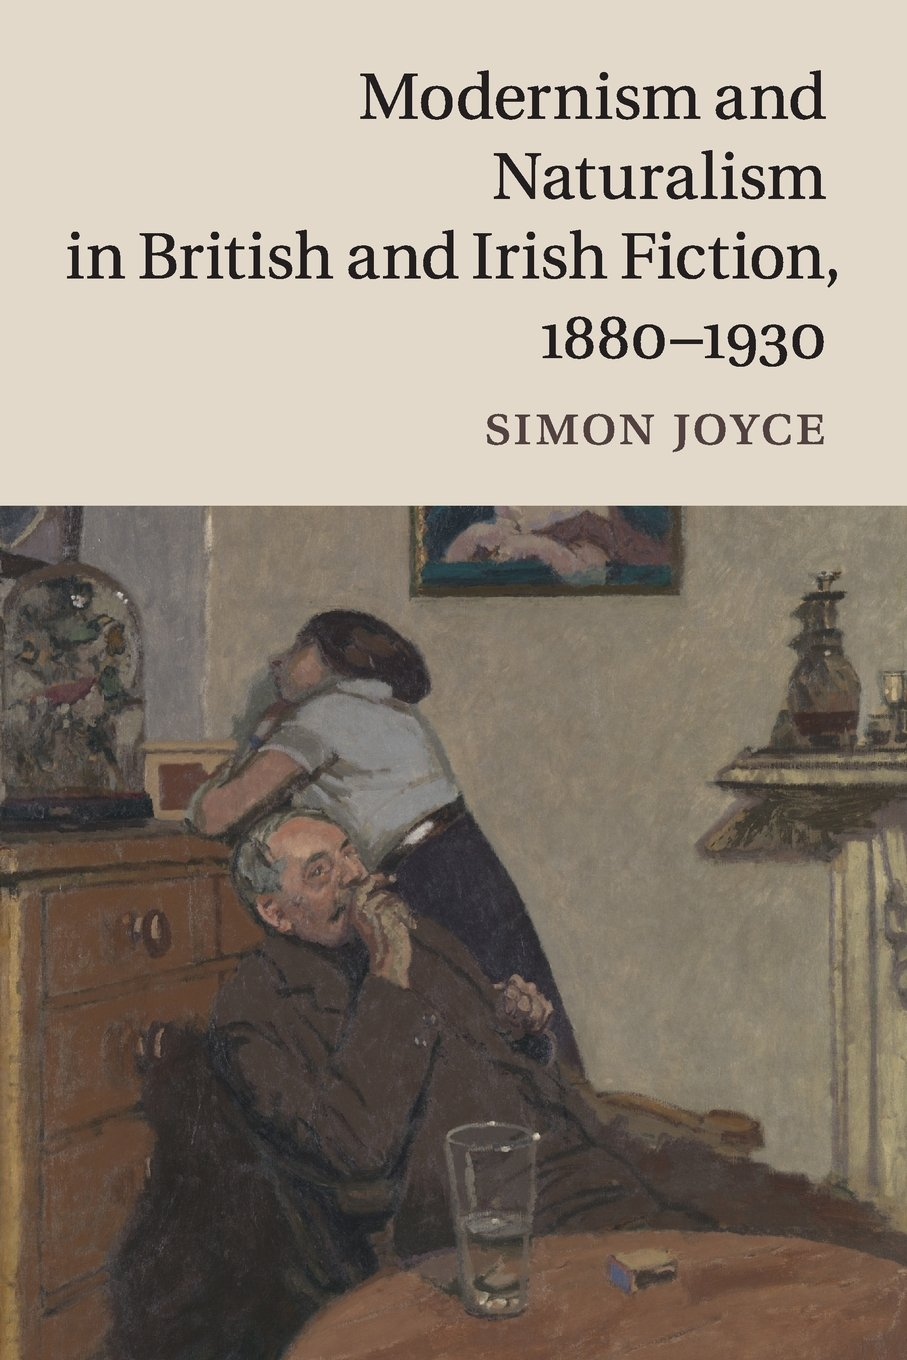 Read Online Modernism and Naturalism in British and Irish Fiction, 1880-1930 PDF